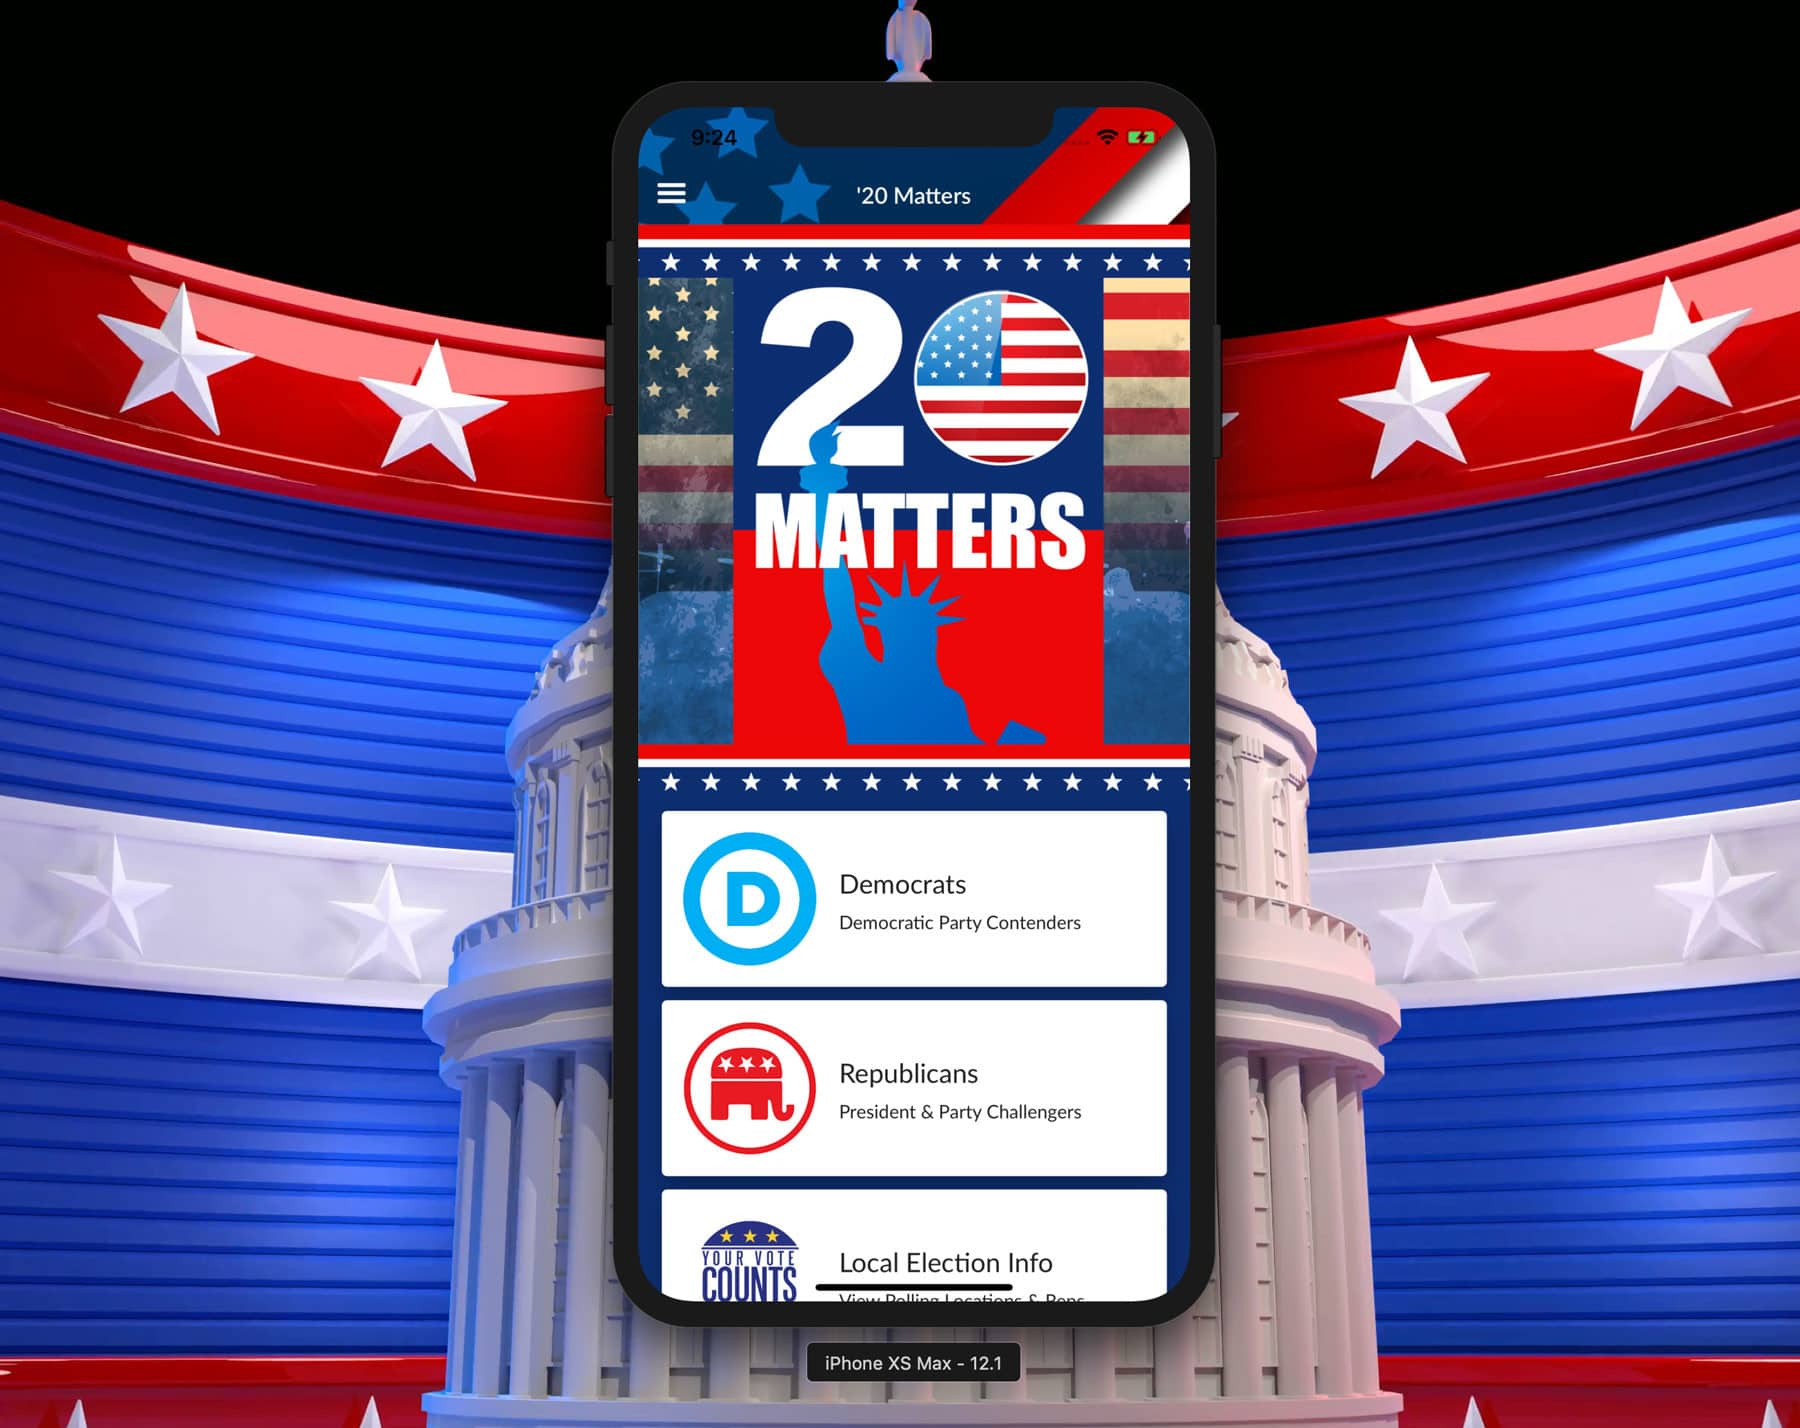 '20 Matters: Mobile app guide for the 2020 Election